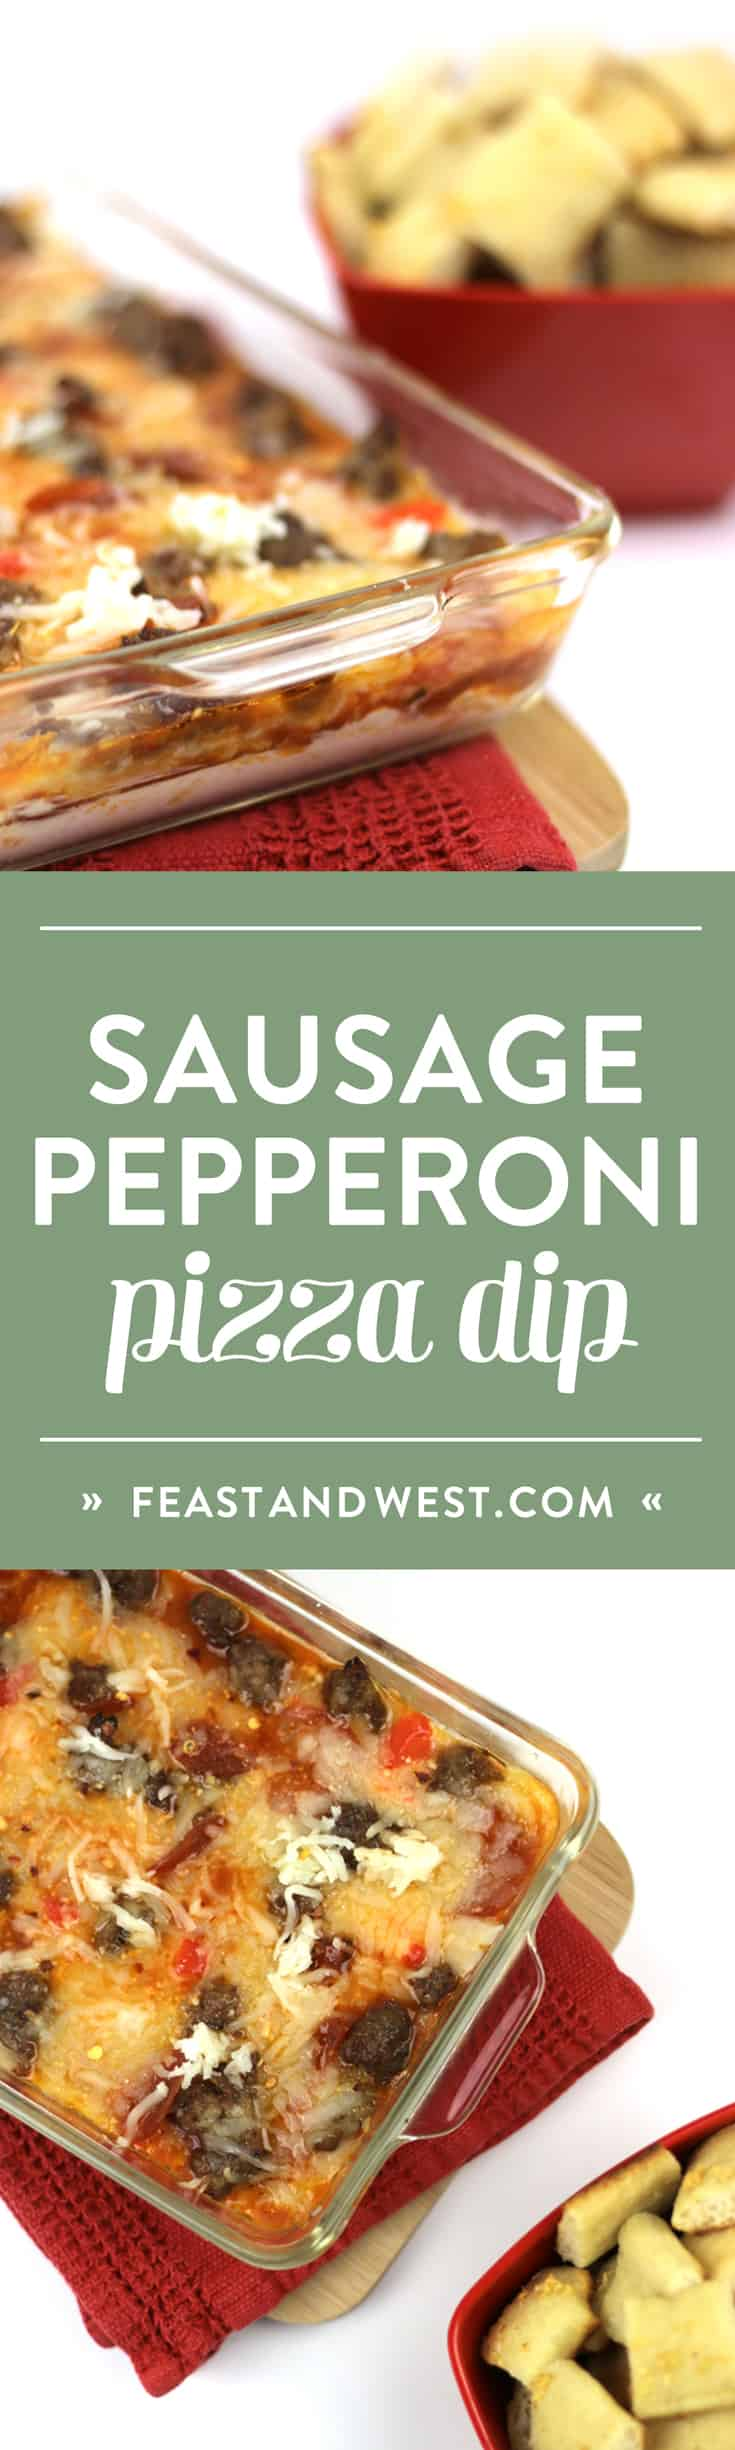 Sausage Pepperoni Pizza Dip is the true winner of any game day celebration. Make garlic pizza crust bites to scoop up these hot layers of cream cheese, pizza sauce, mozzarella cheese, pepperoni and Italian sausage. (via feastandwest.com)